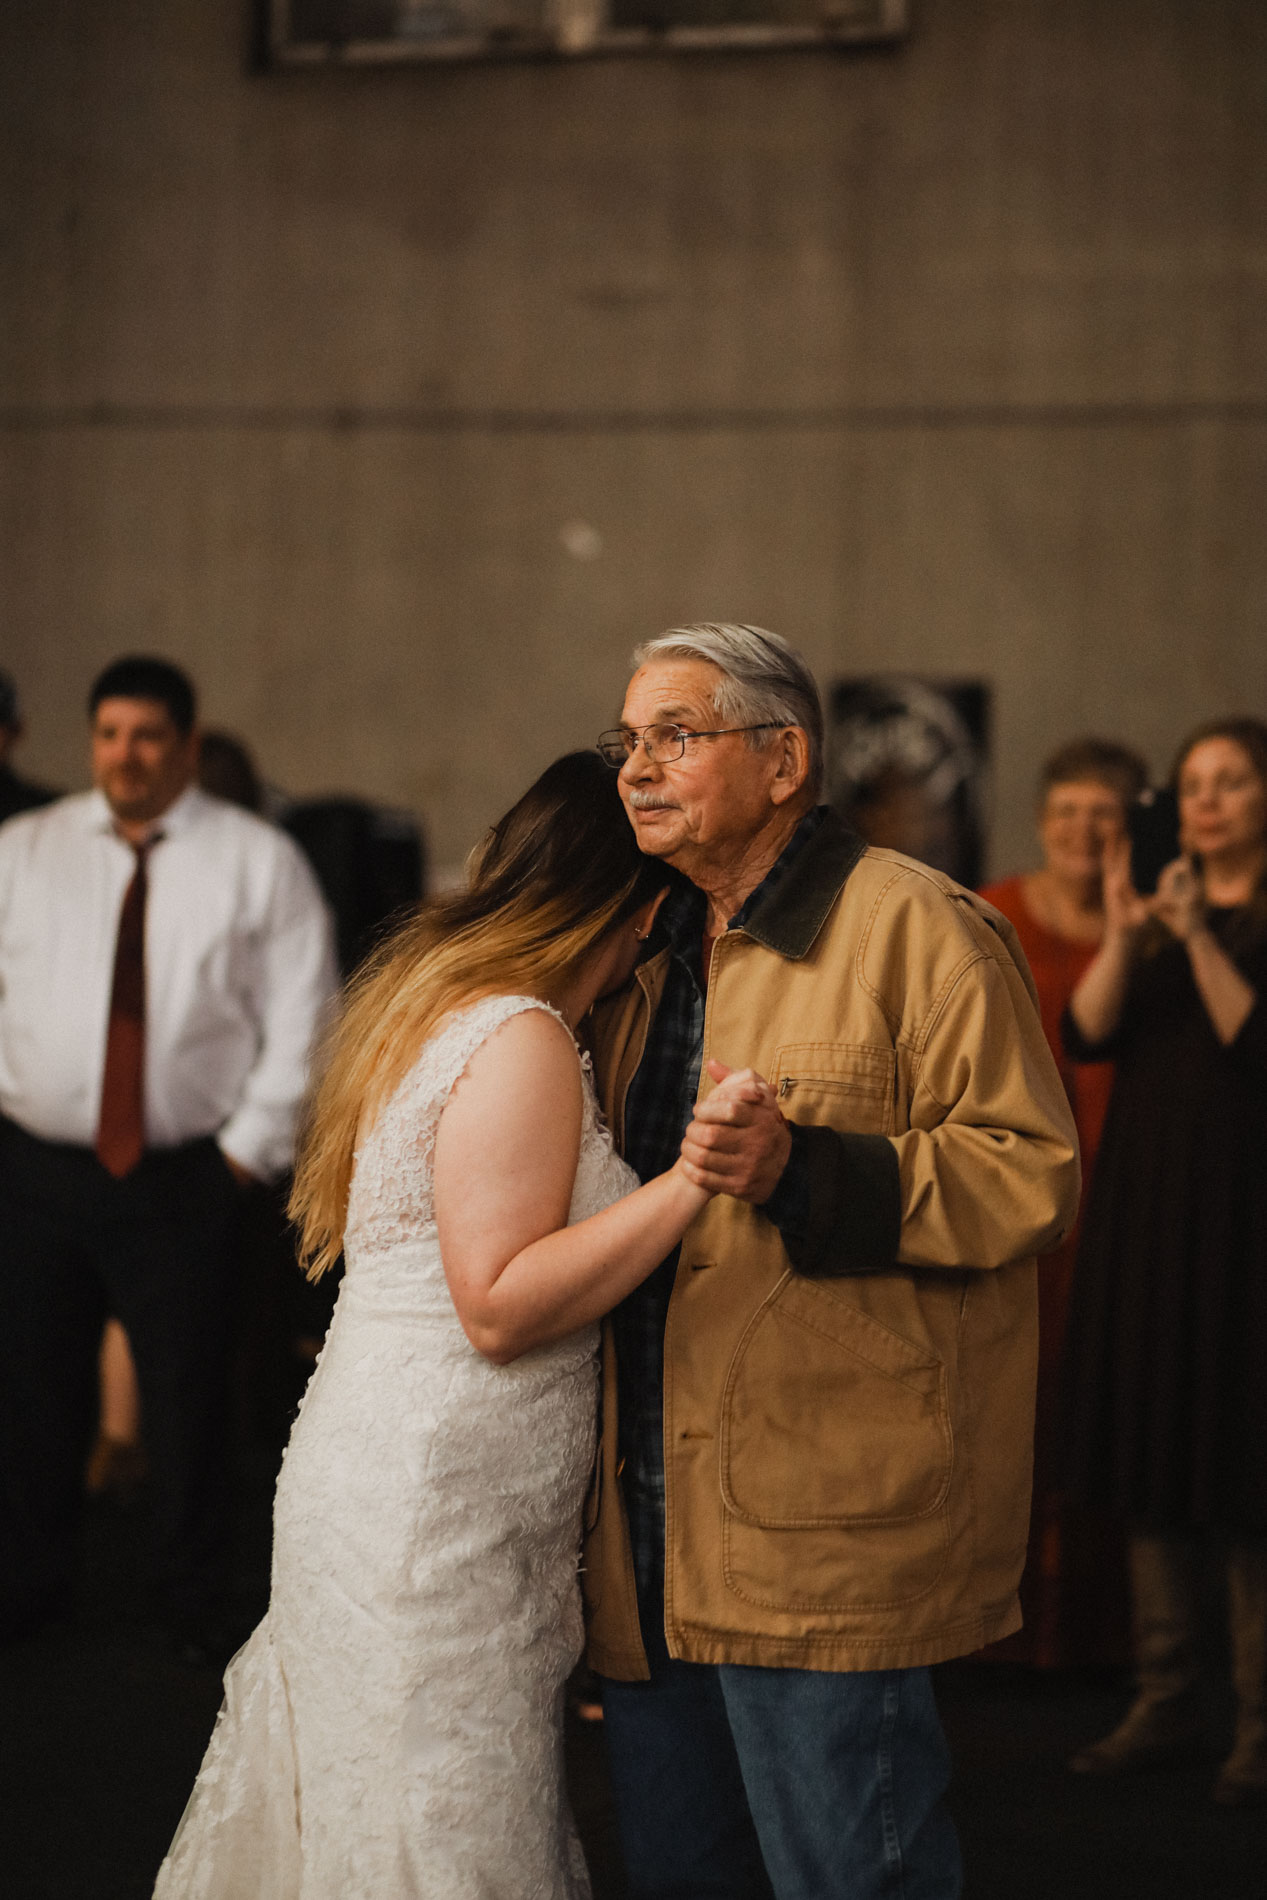 bride and grandpa sharing a dance at wedding